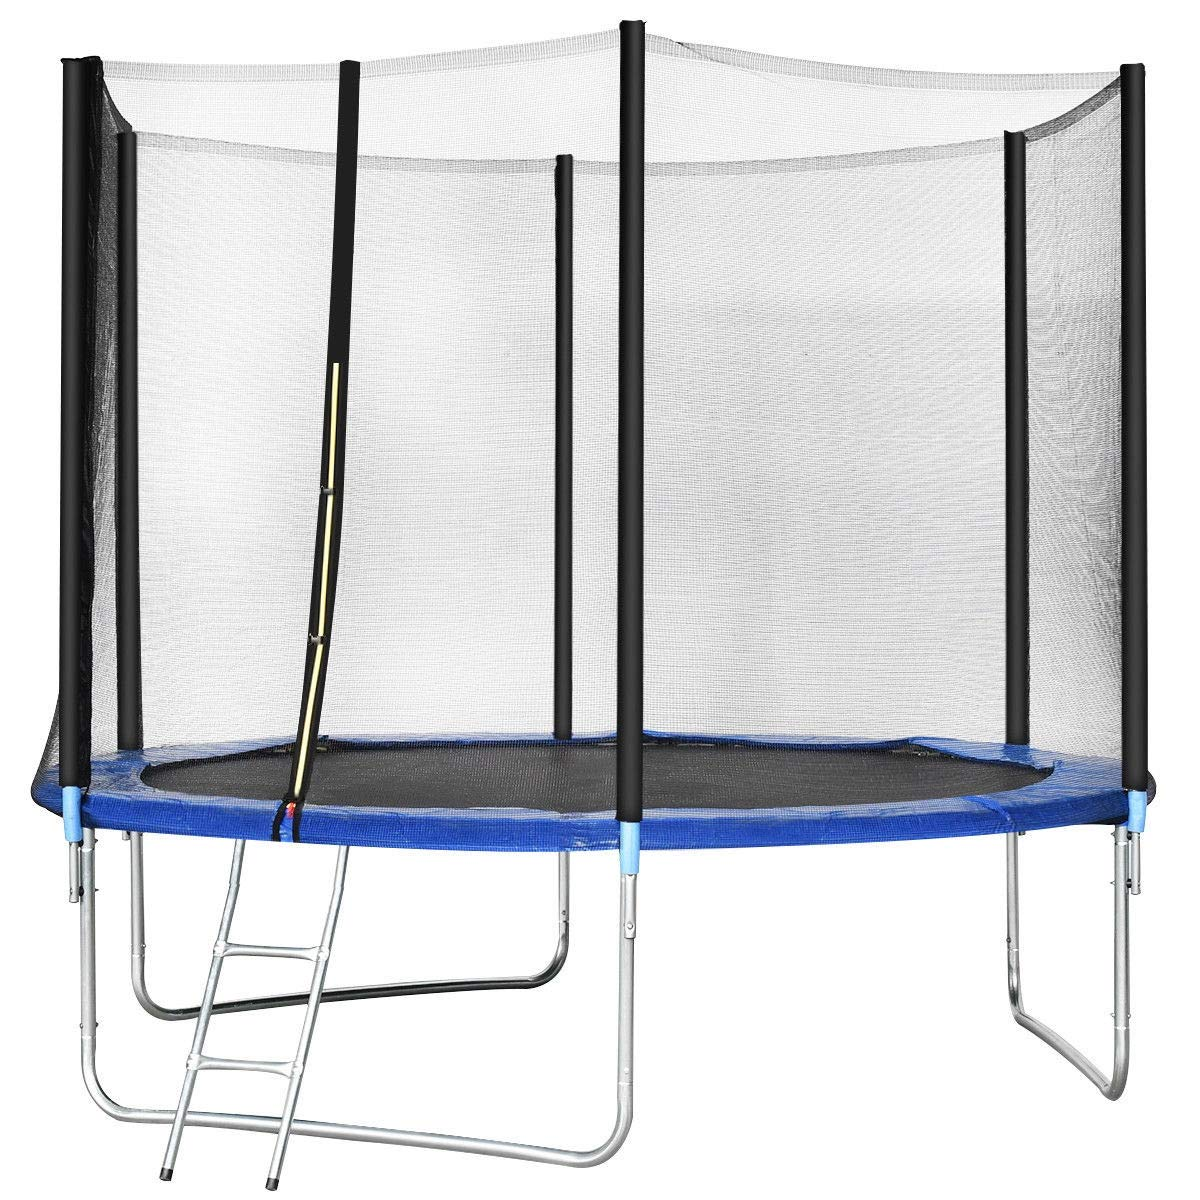 Encourage Kids Outdoors Active 10 ft Combo Bounce Jump Safety Trampoline with Spring Pad Ladder 9rit_Shop by Encourage Kids Outdoors Active 10 ft Combo Bounce Jump Safety Trampoline with Spring Pad Ladder